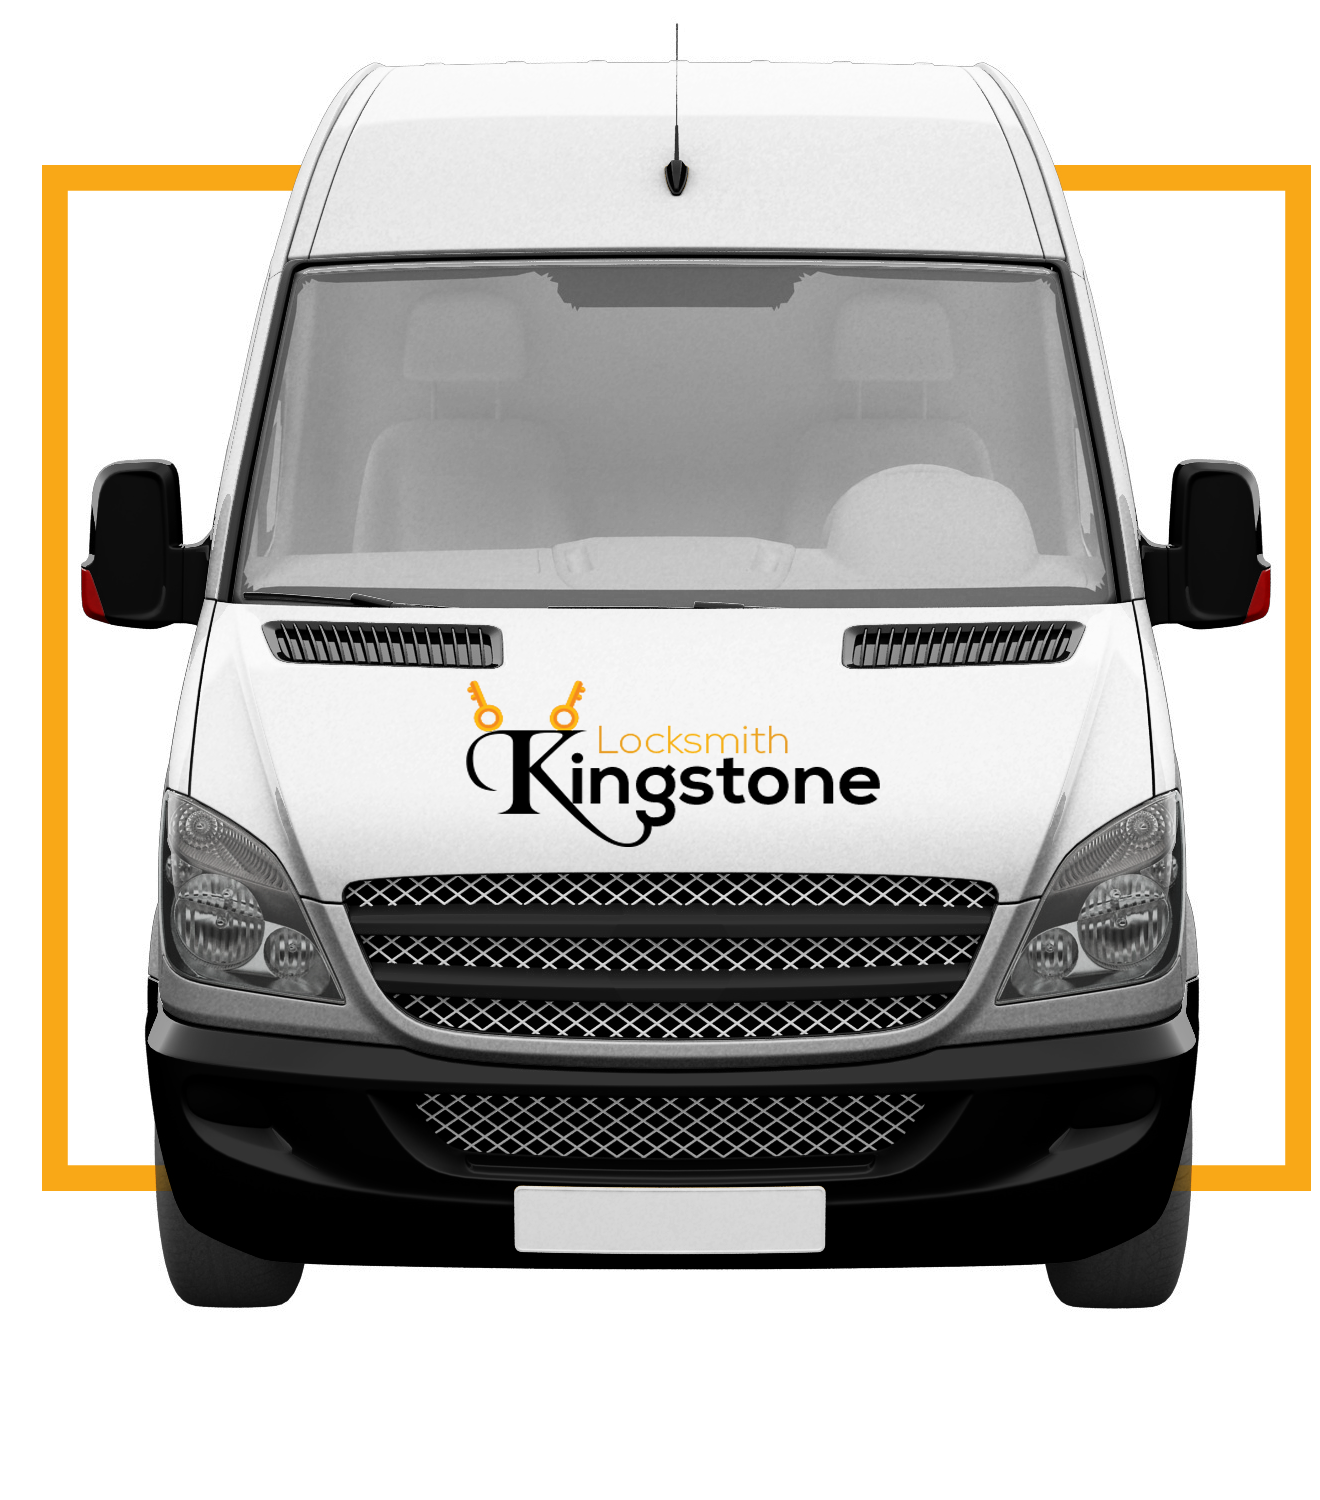 Kingsotone locksmith van